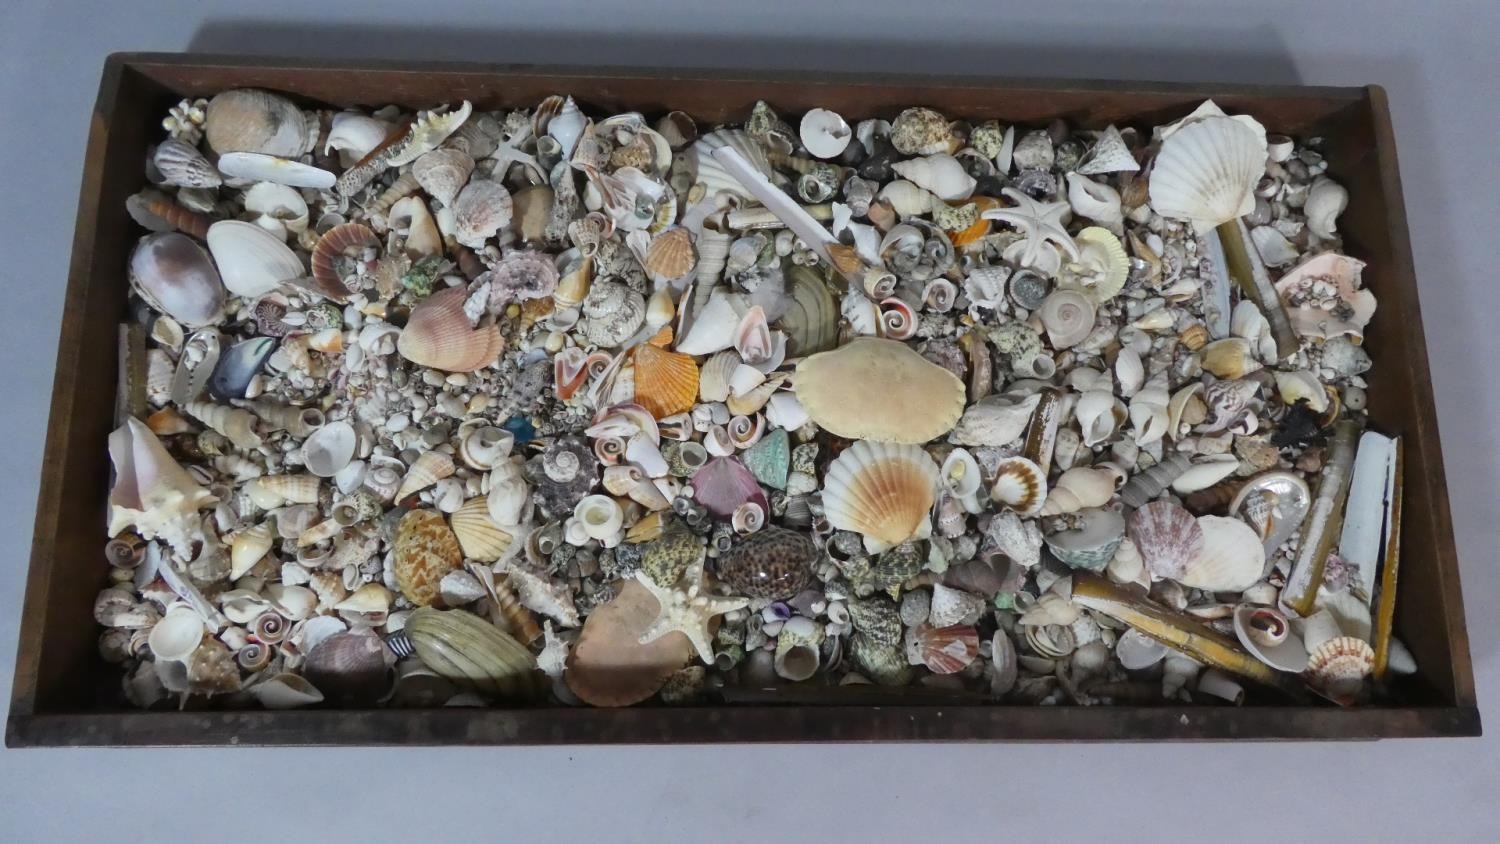 Lot 49 - A Large Collection of Seashells in a Wooden Tray. 50cm x 100cm